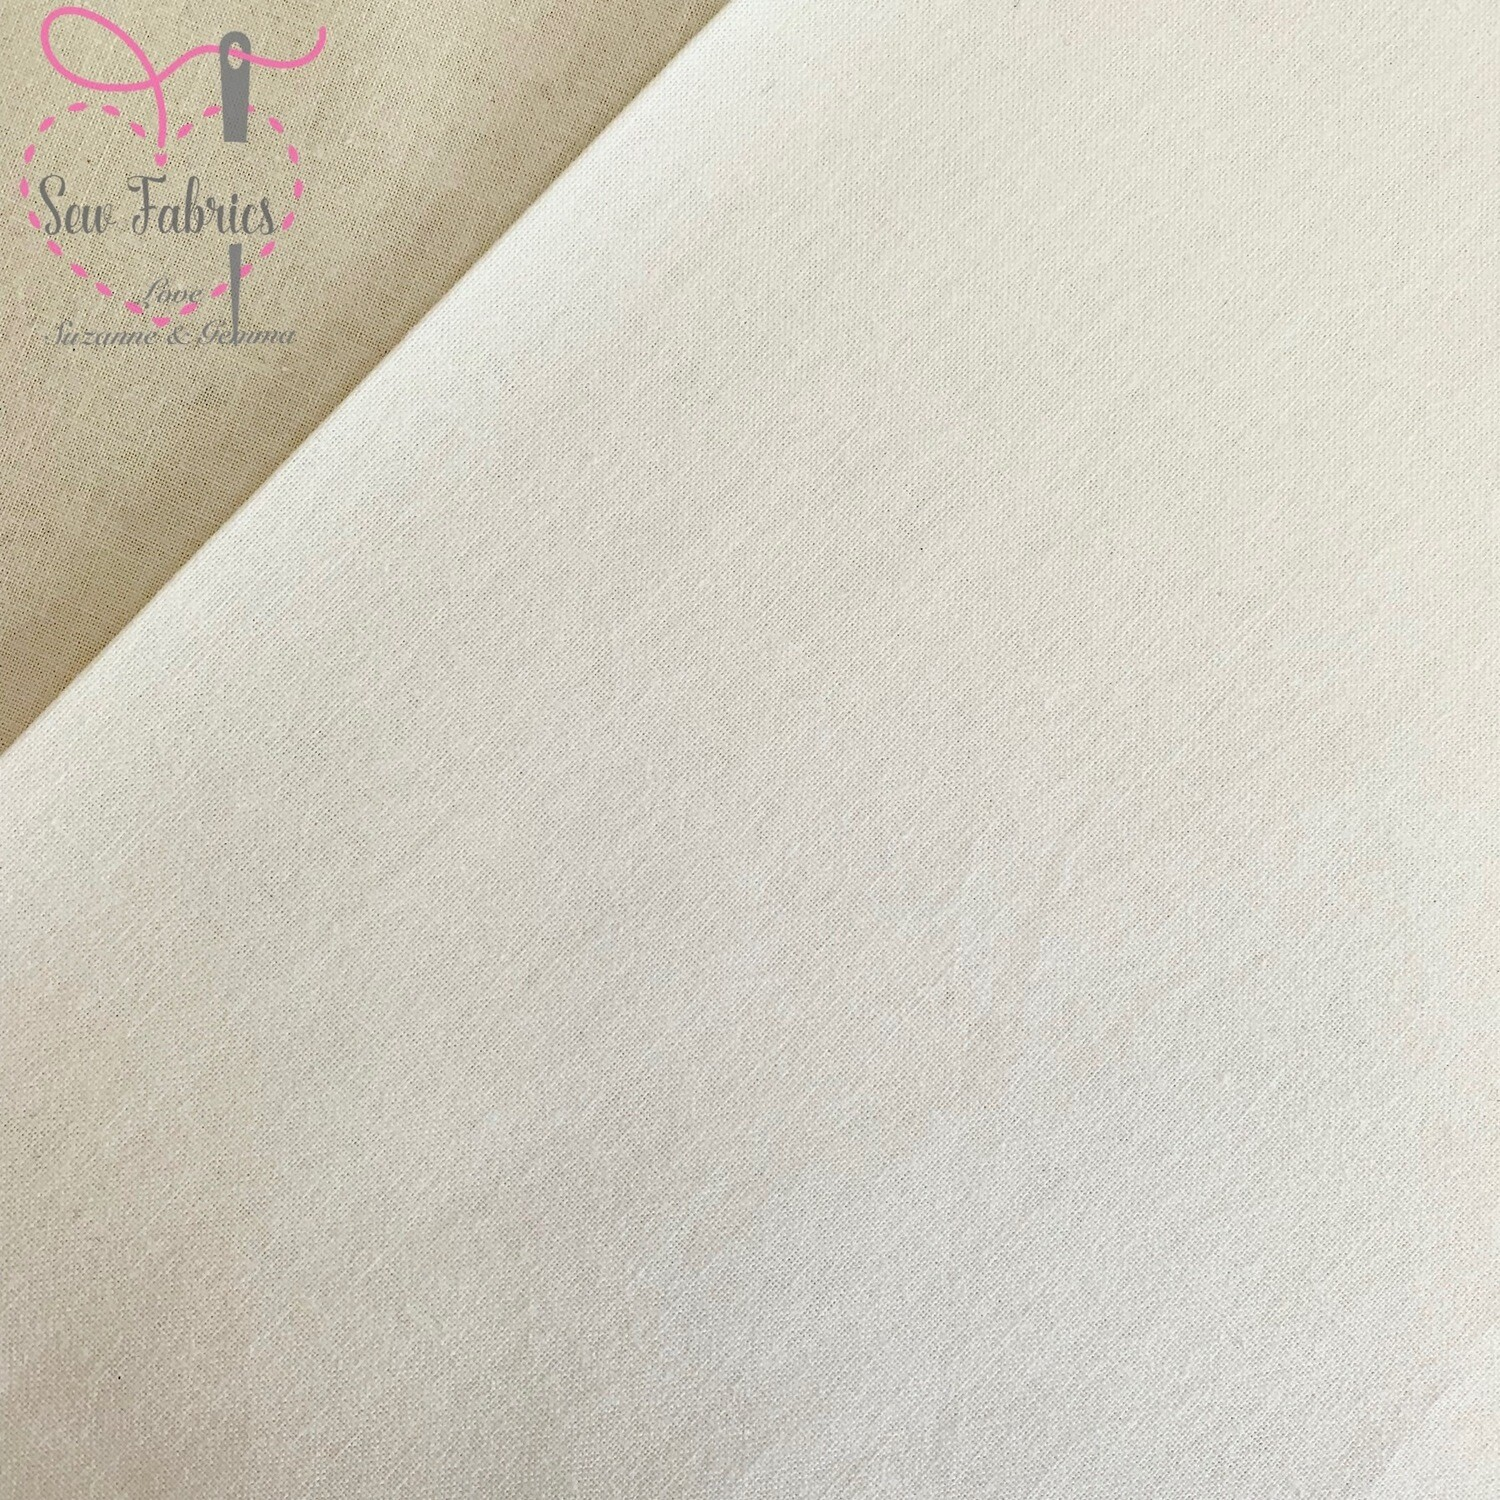 Rose & Hubble Ivory 100% Craft Cotton Solid Fabric Plain Material